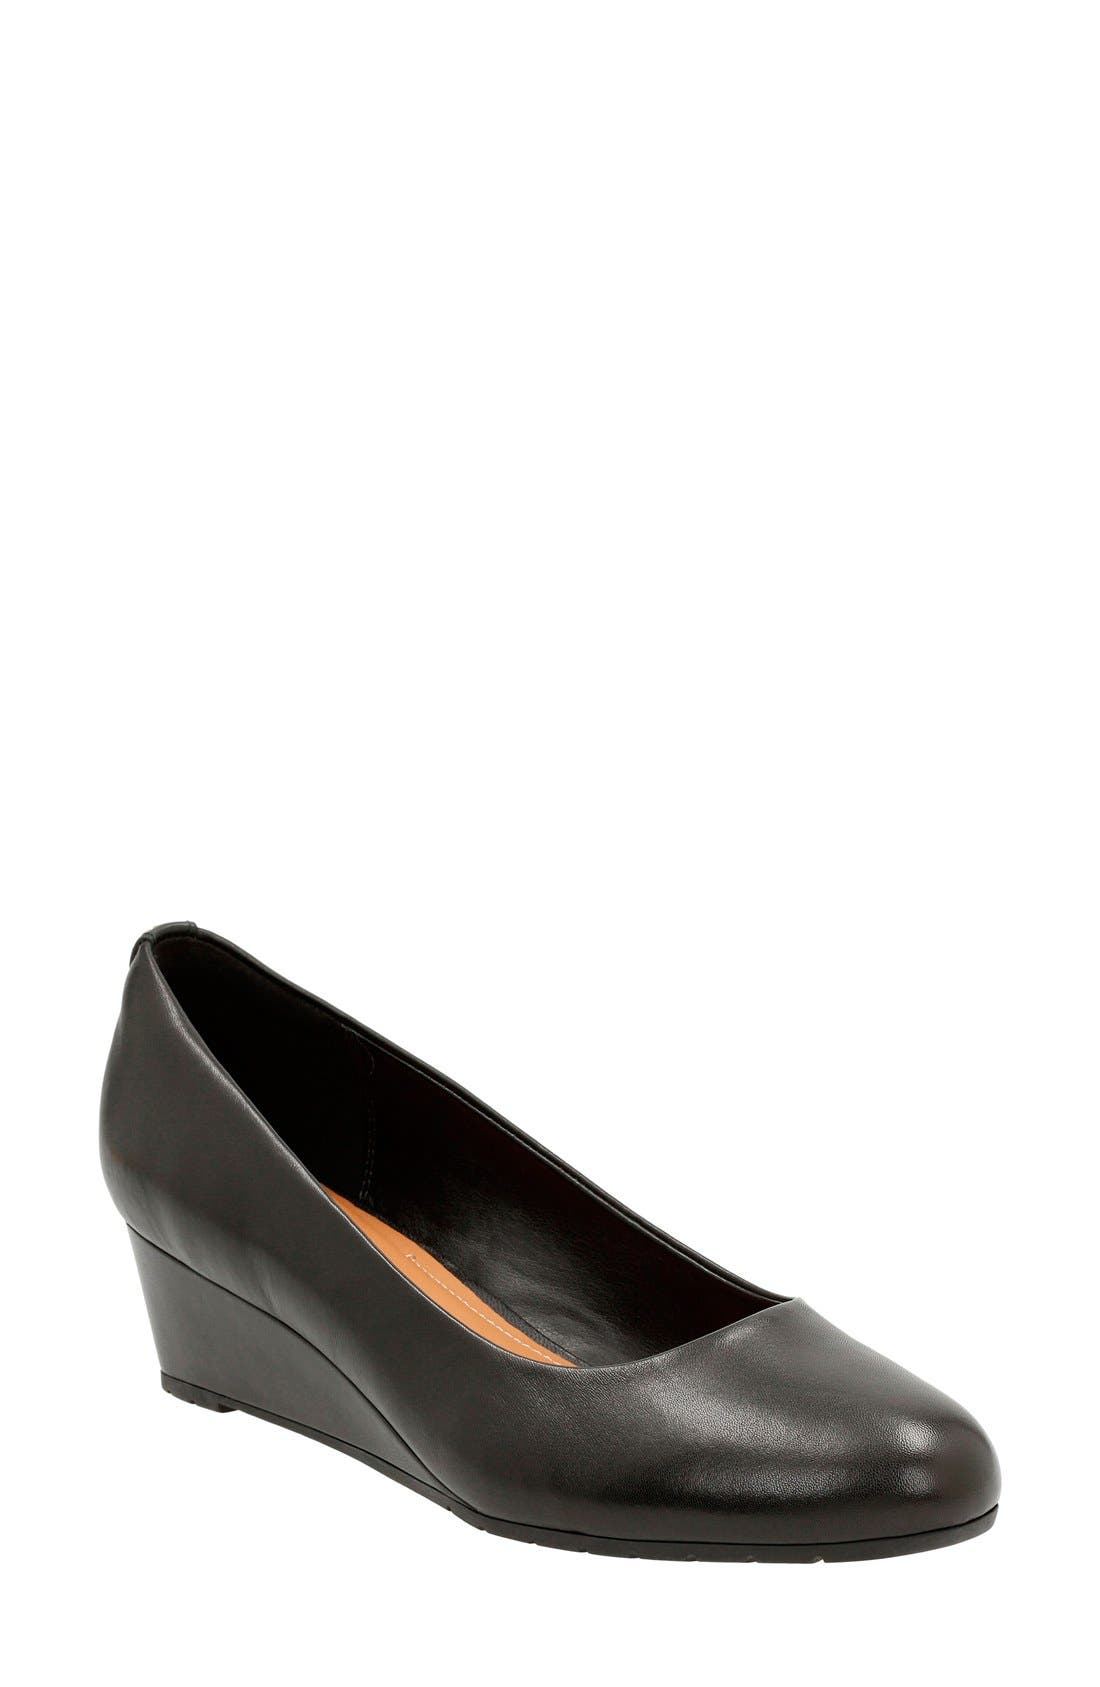 'Vendra Bloom' Wedge Pump,                             Main thumbnail 1, color,                             Black Leather